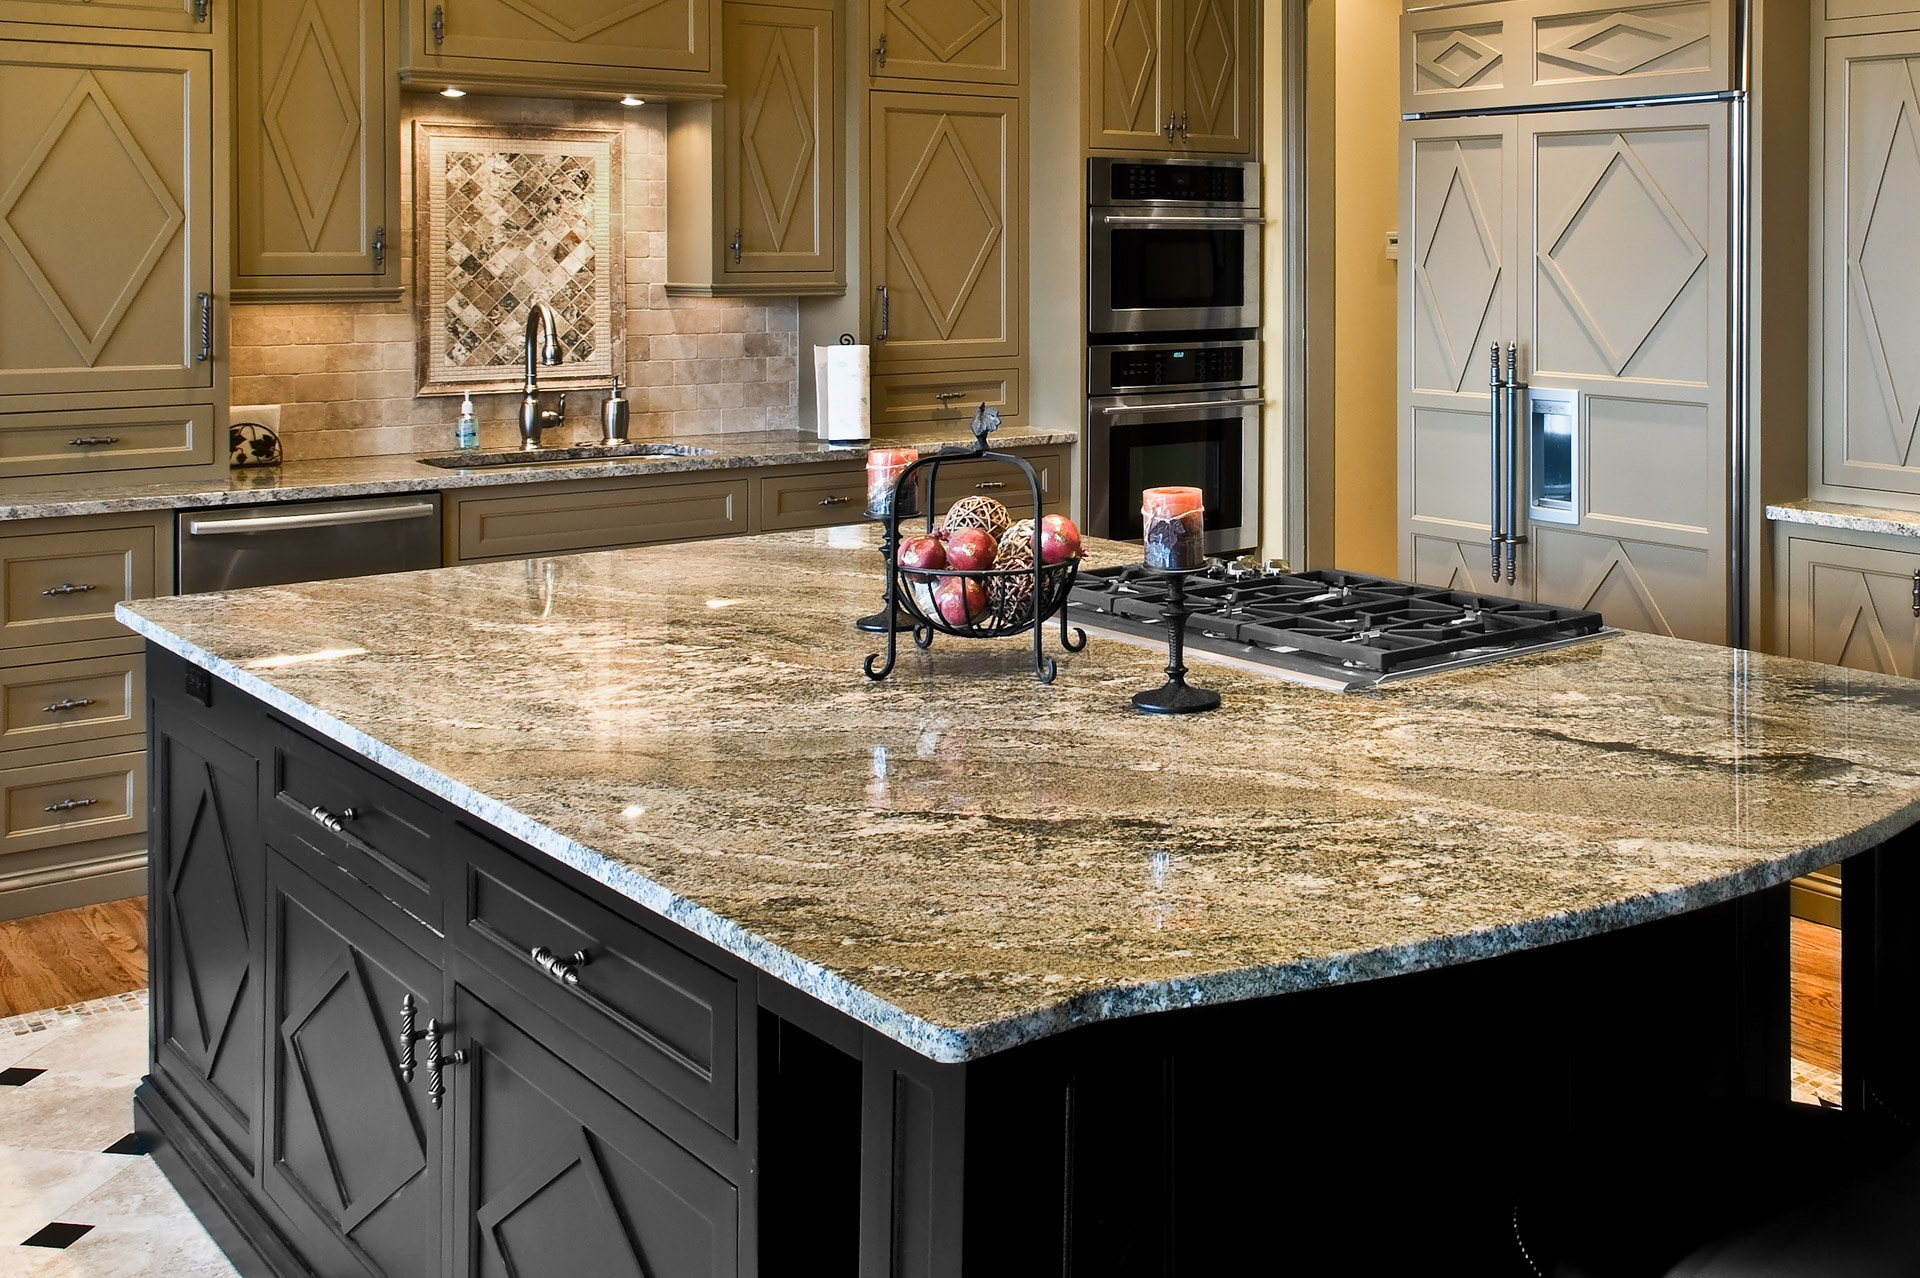 Genial Granite Granite Kitchen Countertops In Atlanta Made